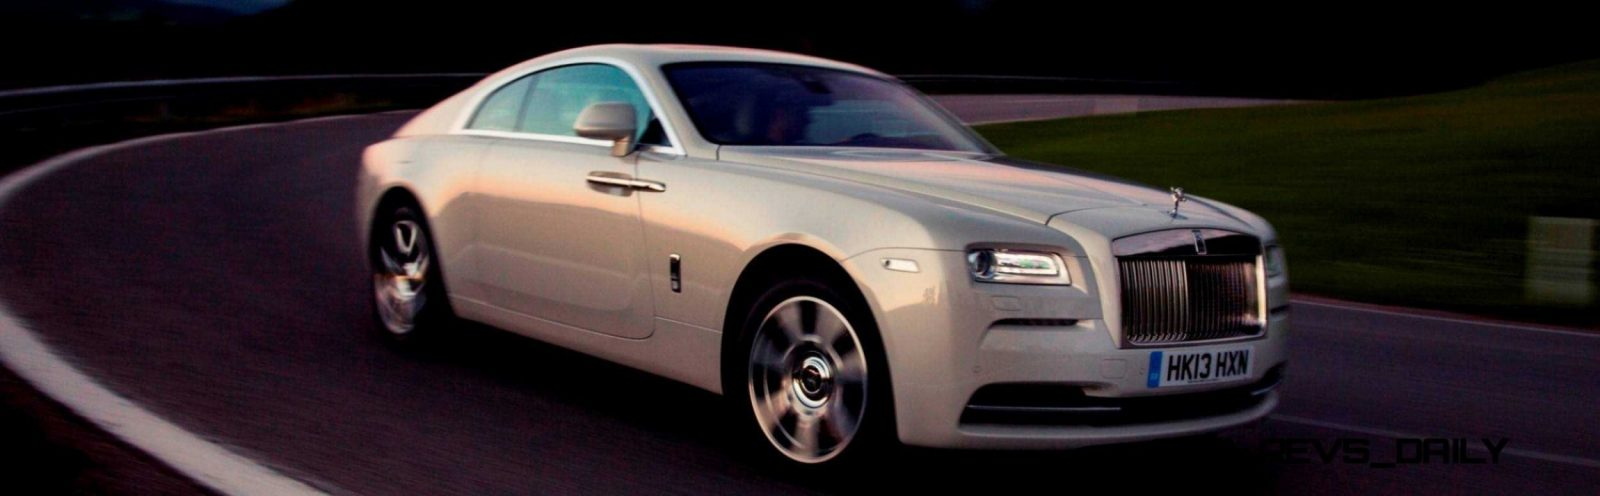 RR Wraith Carrara White Color Showcase CarRevsDaily6